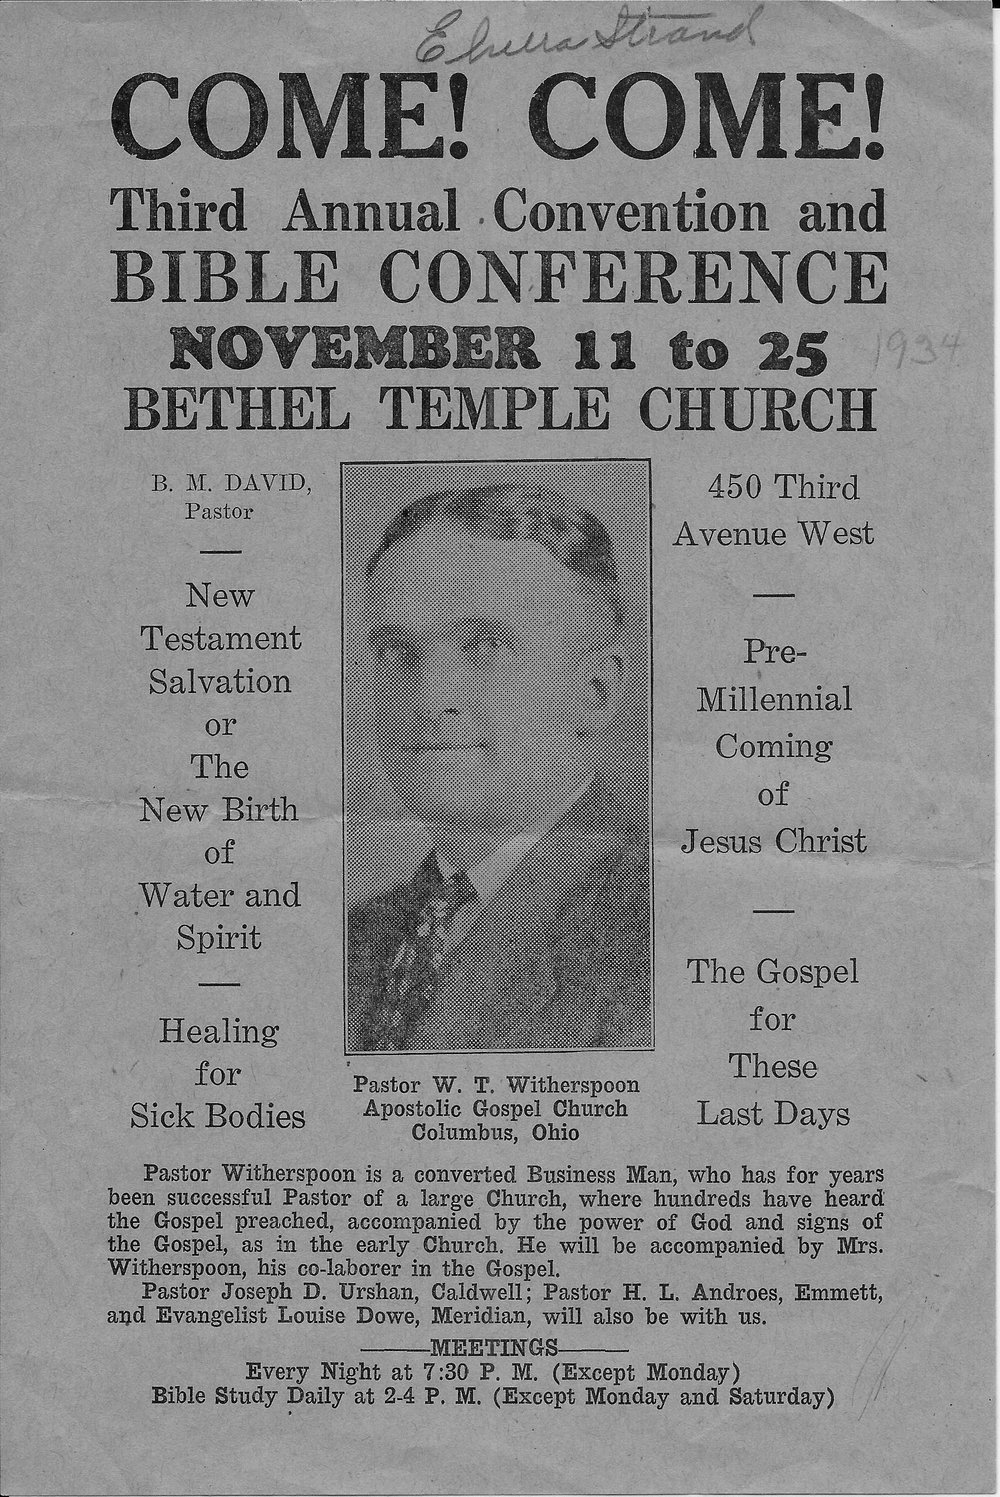 Bethel Temple Church - 3rd Annual Bible Conference-WT Witherspo.jpg